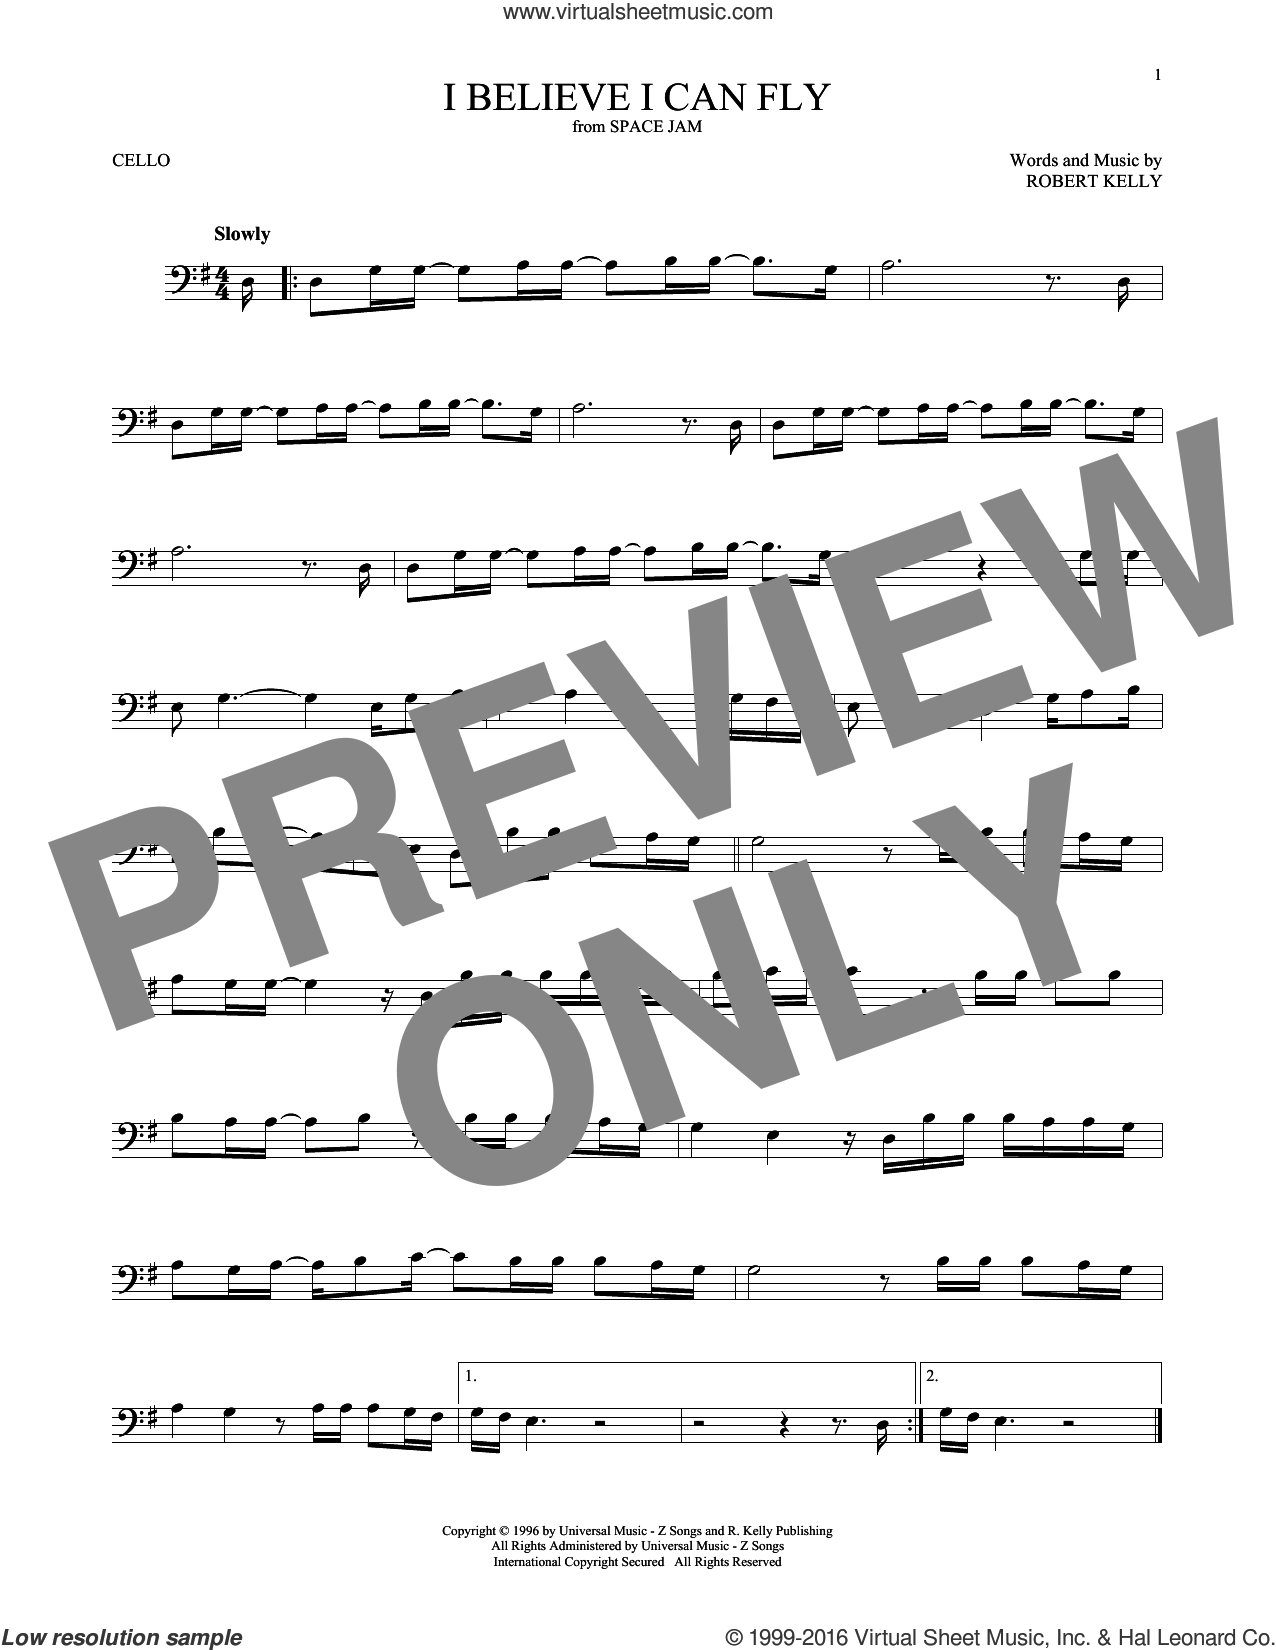 I Believe I Can Fly sheet music for cello solo by Robert Kelly and Jermaine Paul, intermediate skill level